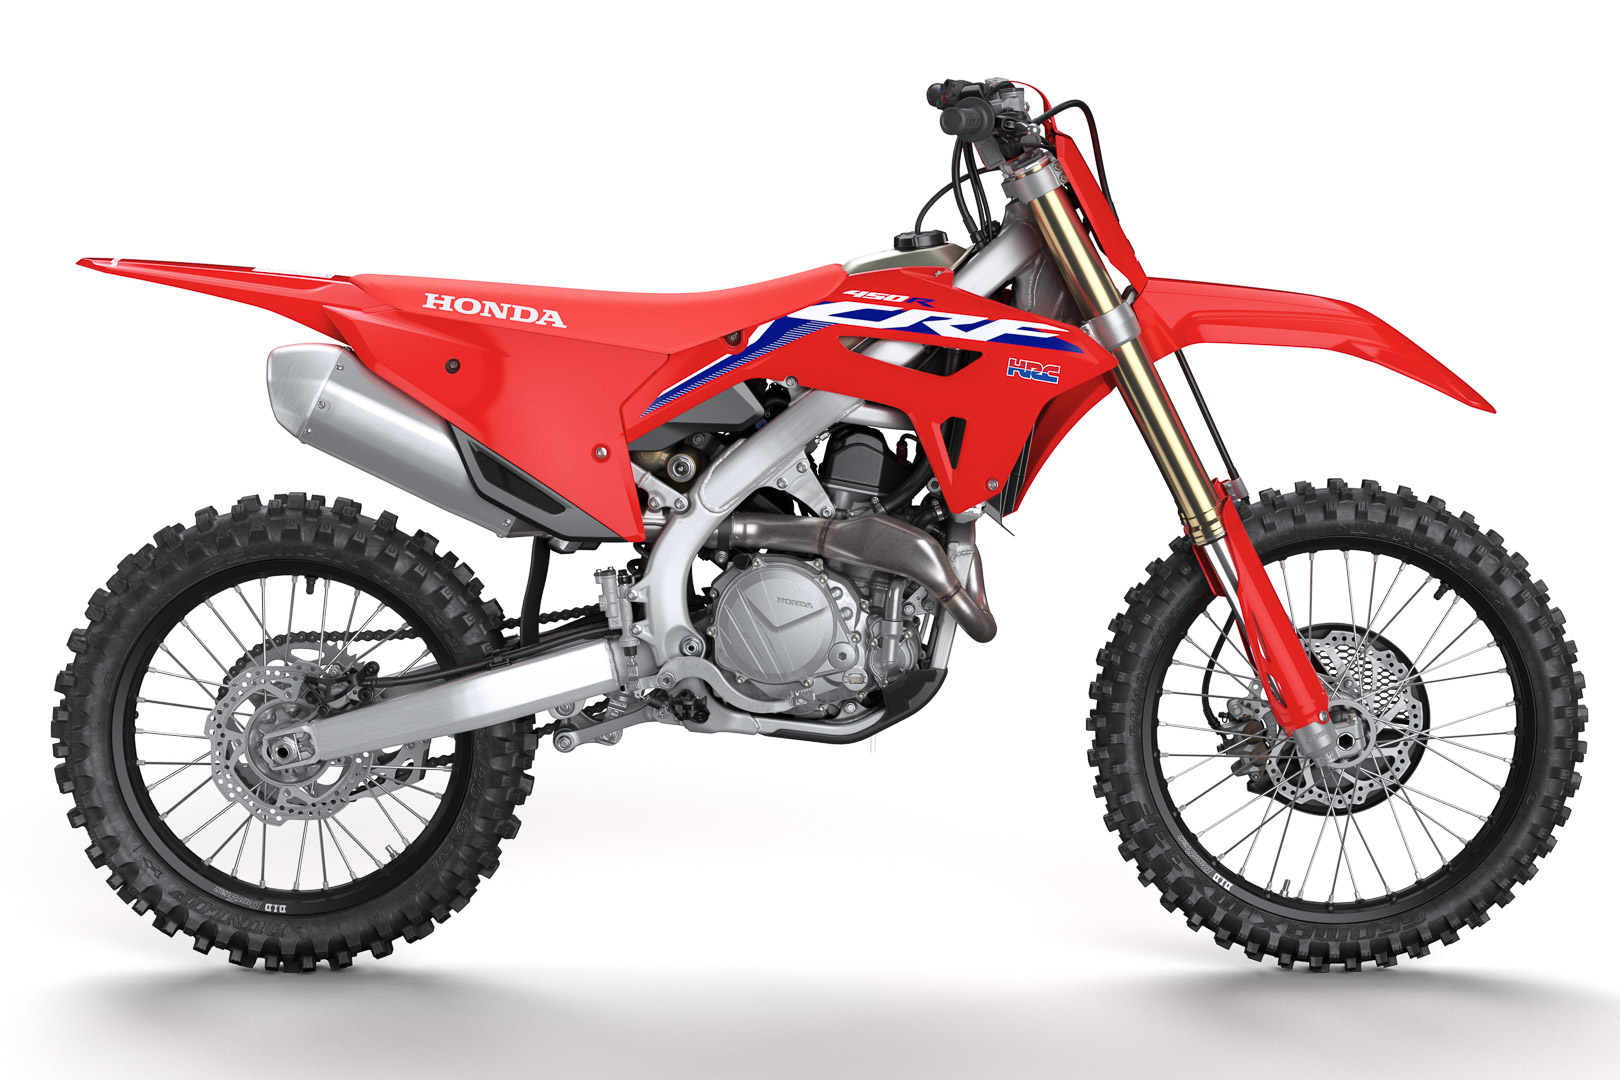 2022 Honda CRF450 Lineup First Look: 6 Models (7 Fast Facts)